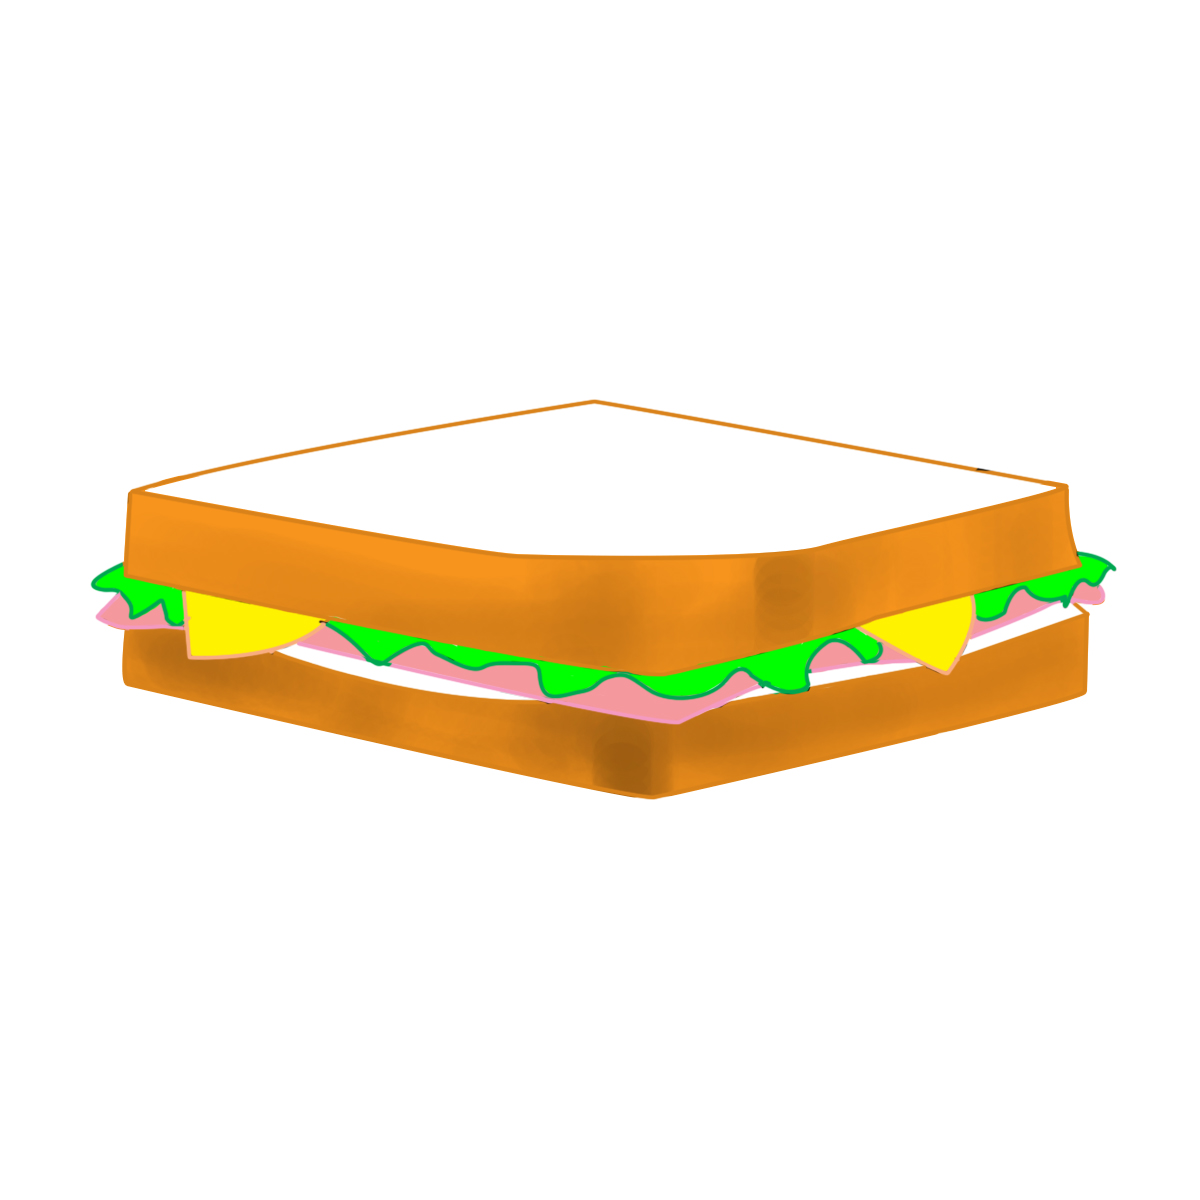 Sandwich Vector - ClipArt Best